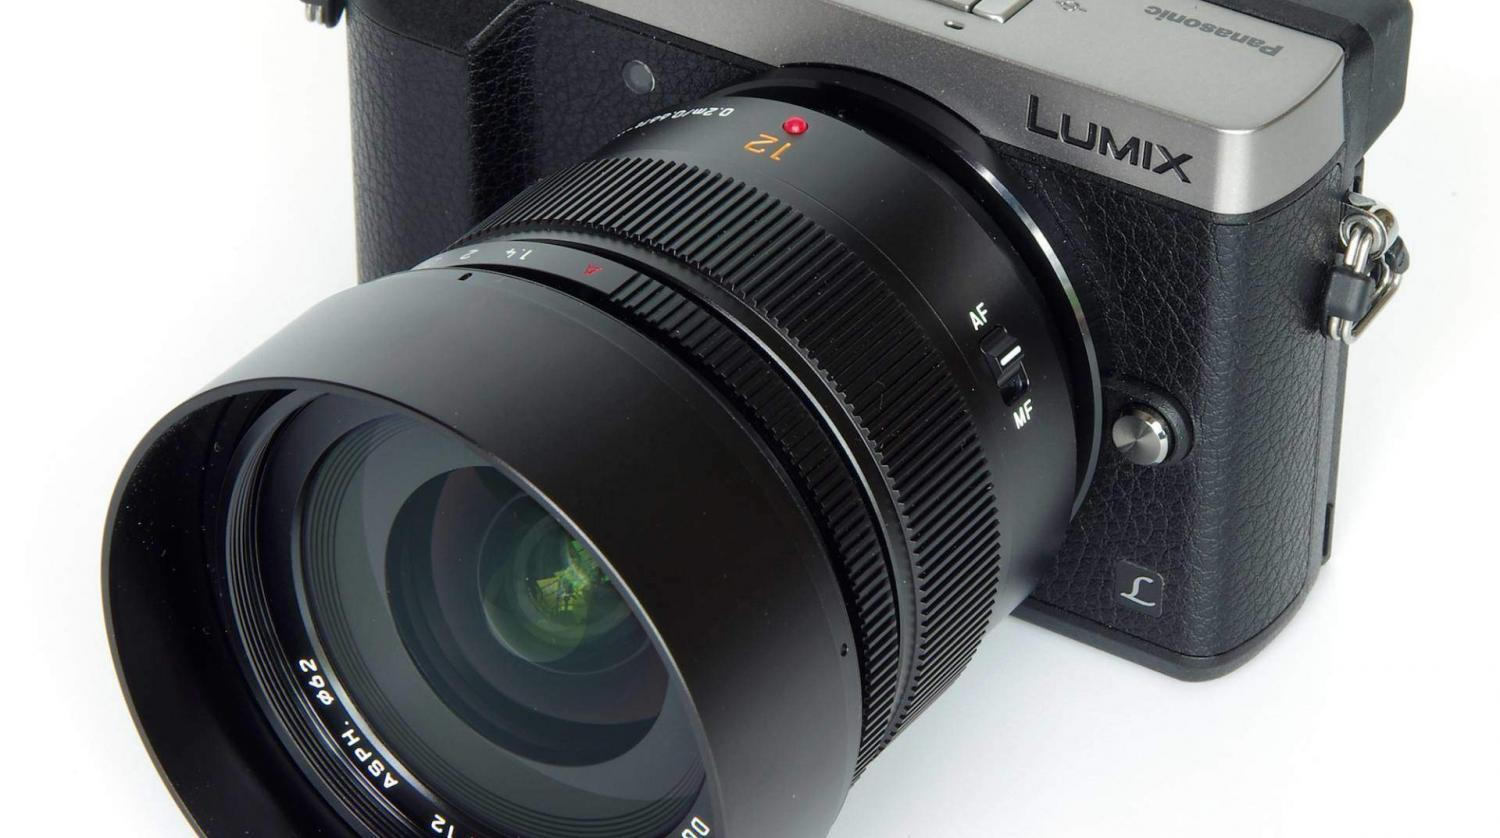 Lumix 12mm f1.4 DG Summilux 1 22